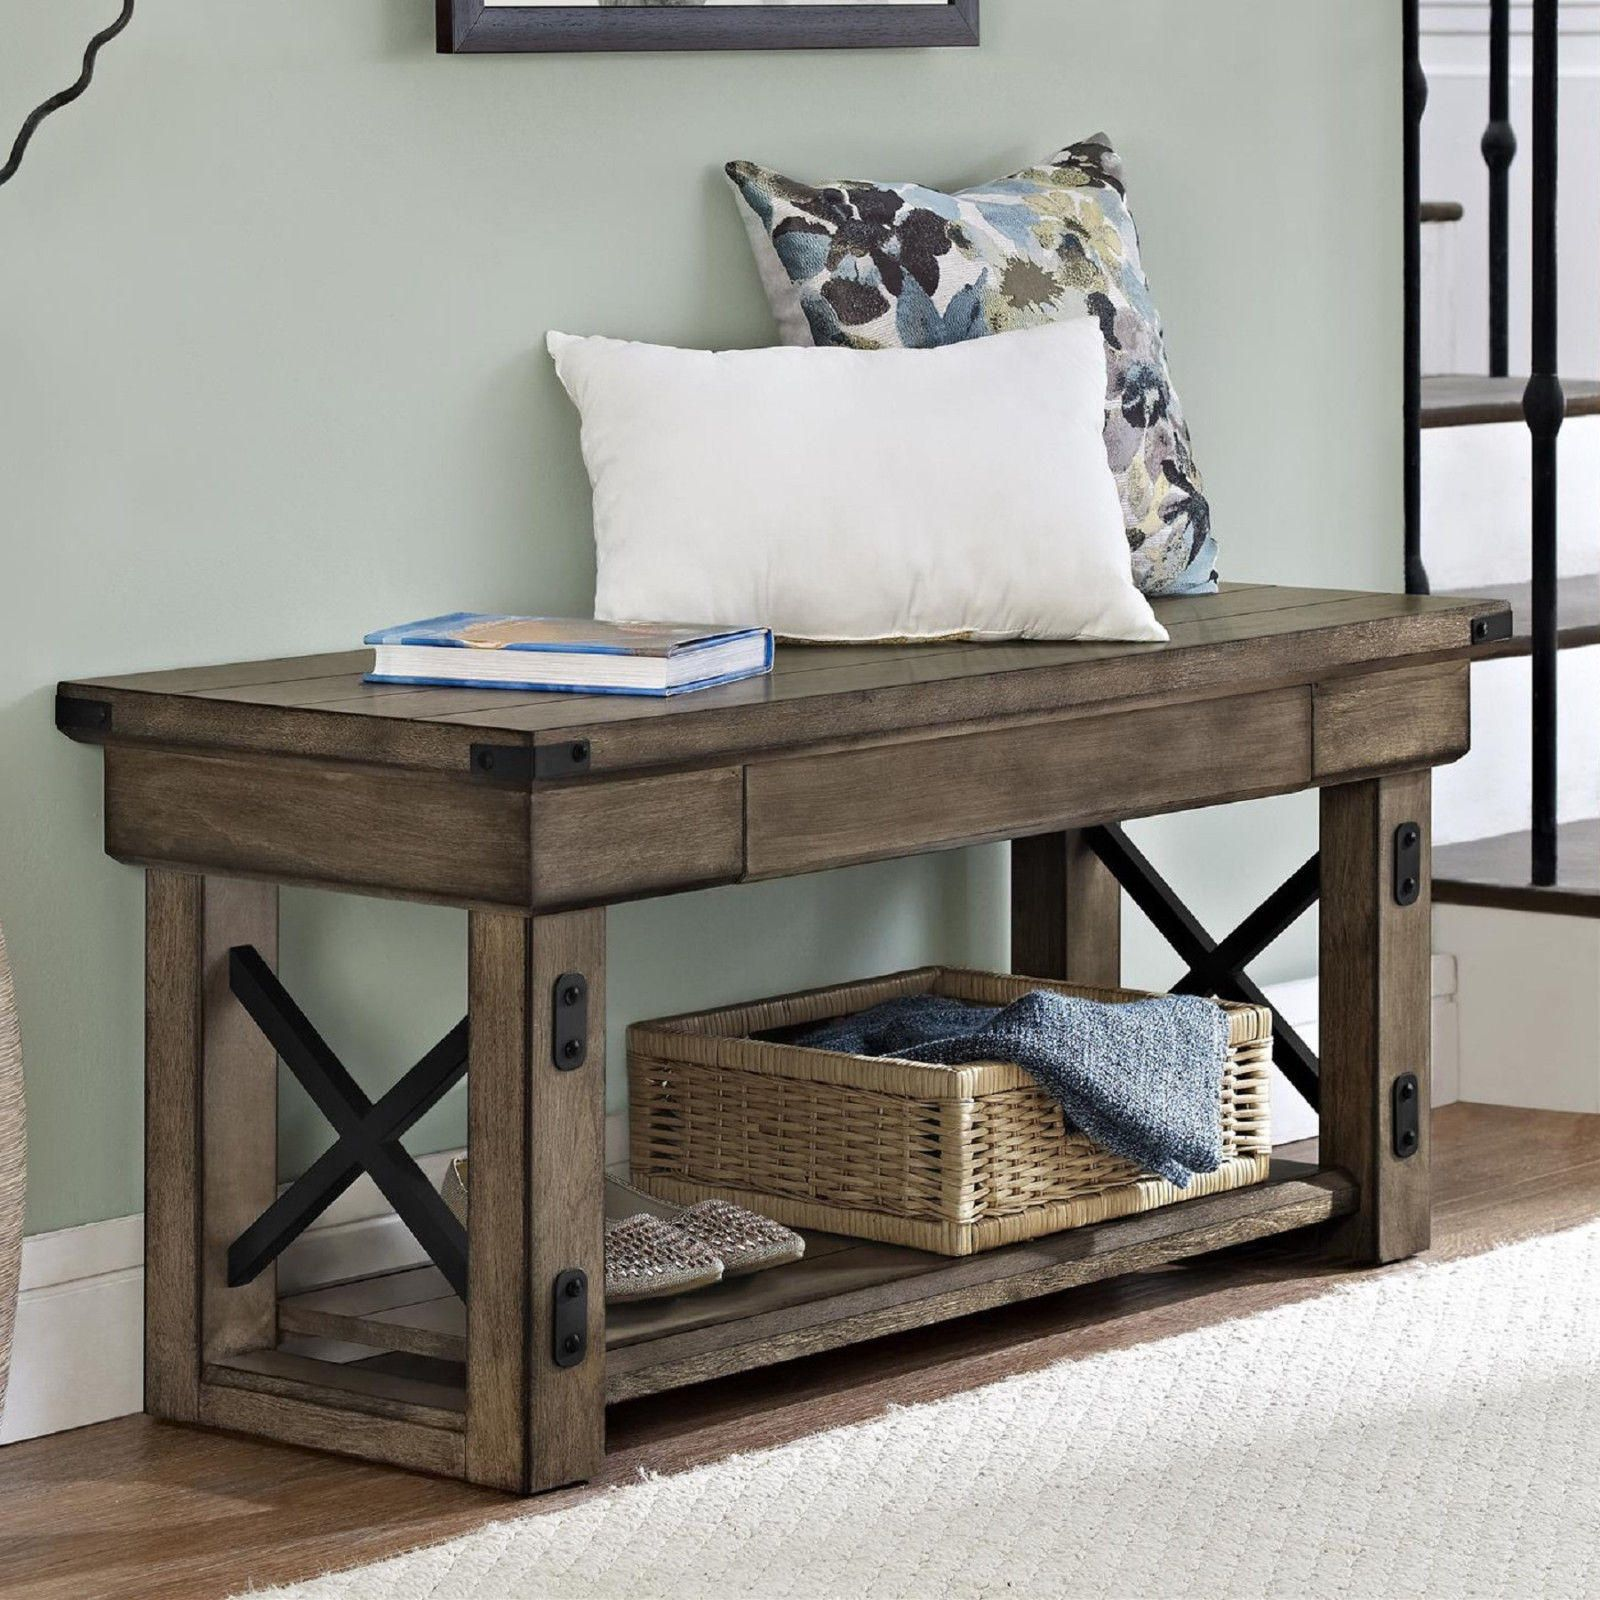 Entryway Storage Bench Rustic Hallway Living Room Bedroom Seat Home